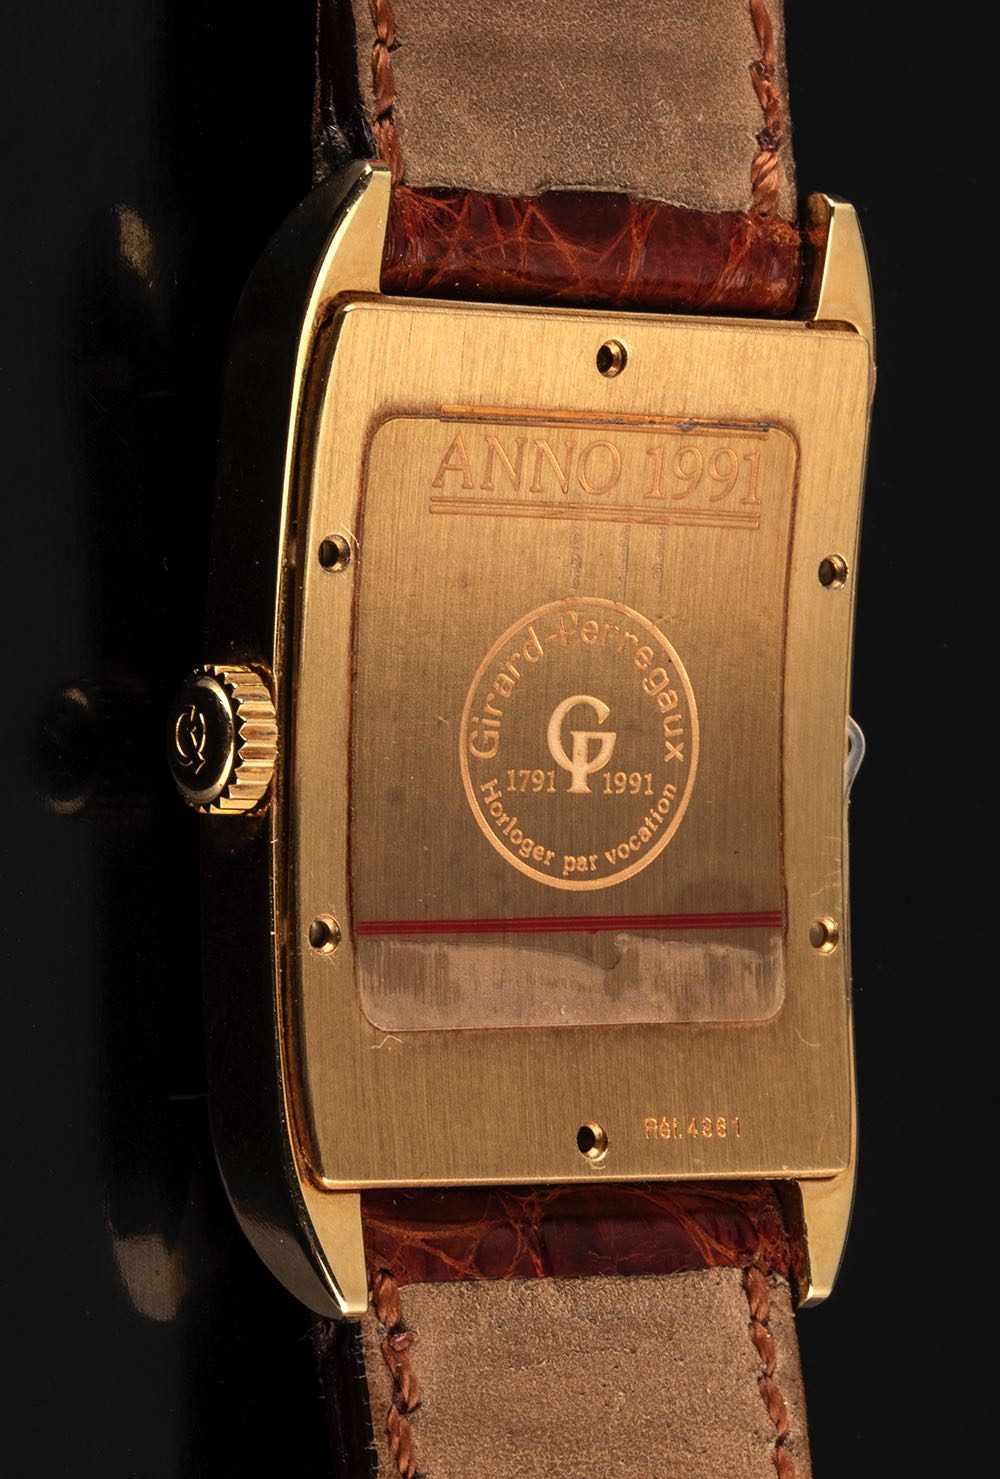 Girard Perregaux, 18 kt gold, 1791/1991 anniversary, Limited Edition, Ref.4961, Like N.O.S., full se - Image 4 of 4